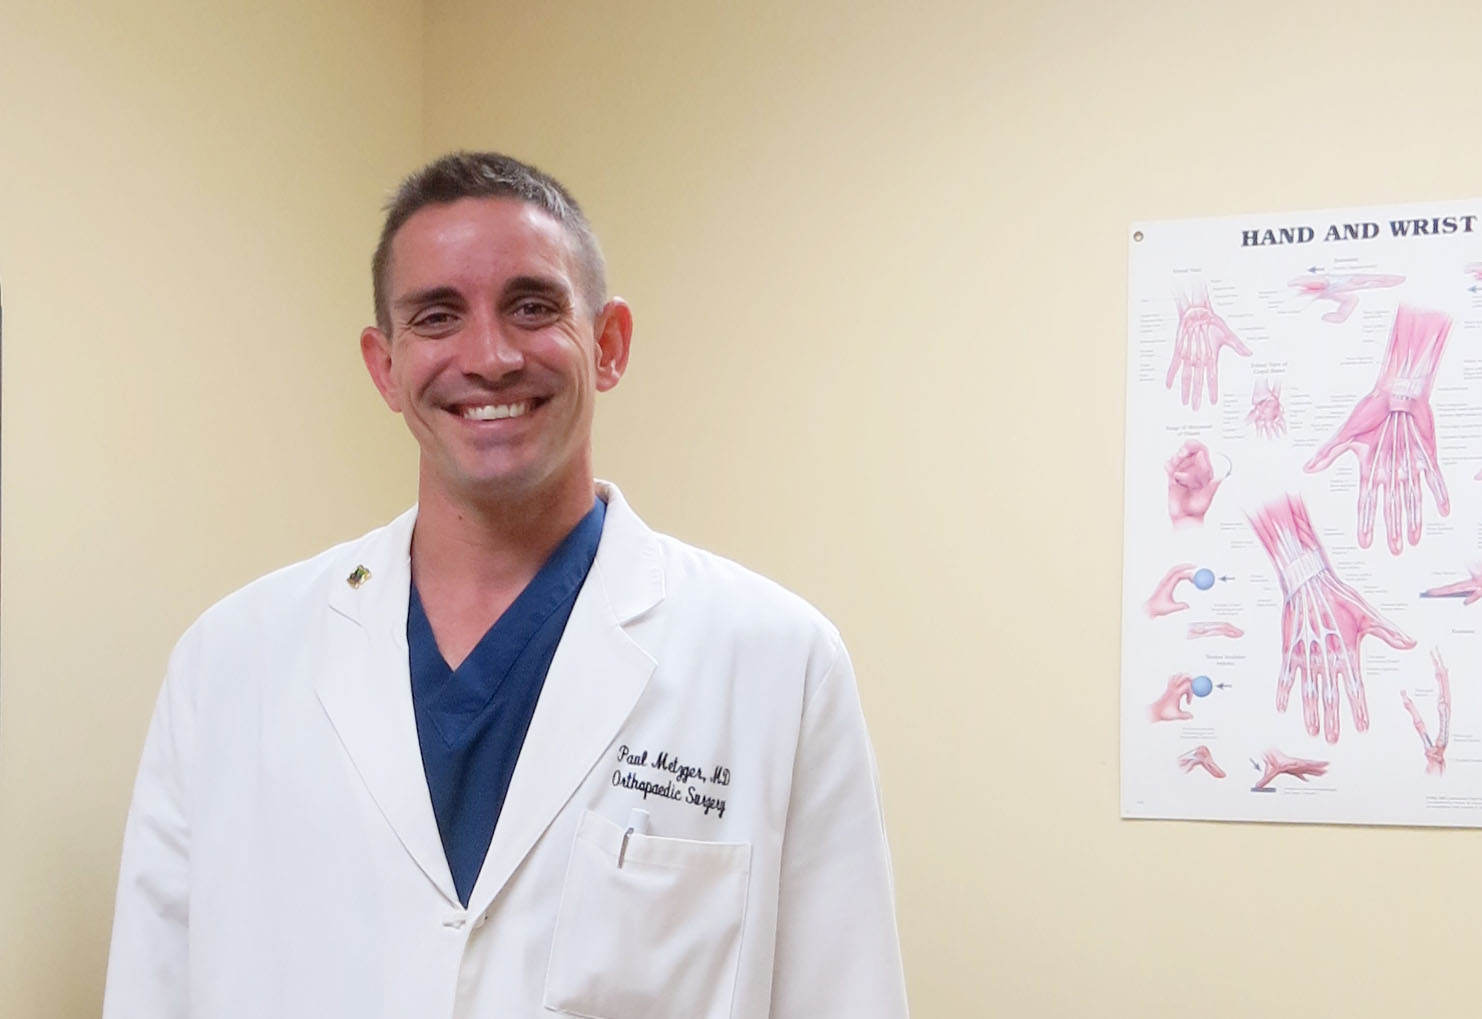 center lovell single guys Dr timothy lovell is an orthopedic surgeon in spokane, washington and is affiliated with providence sacred heart medical center and lovell, t p single.